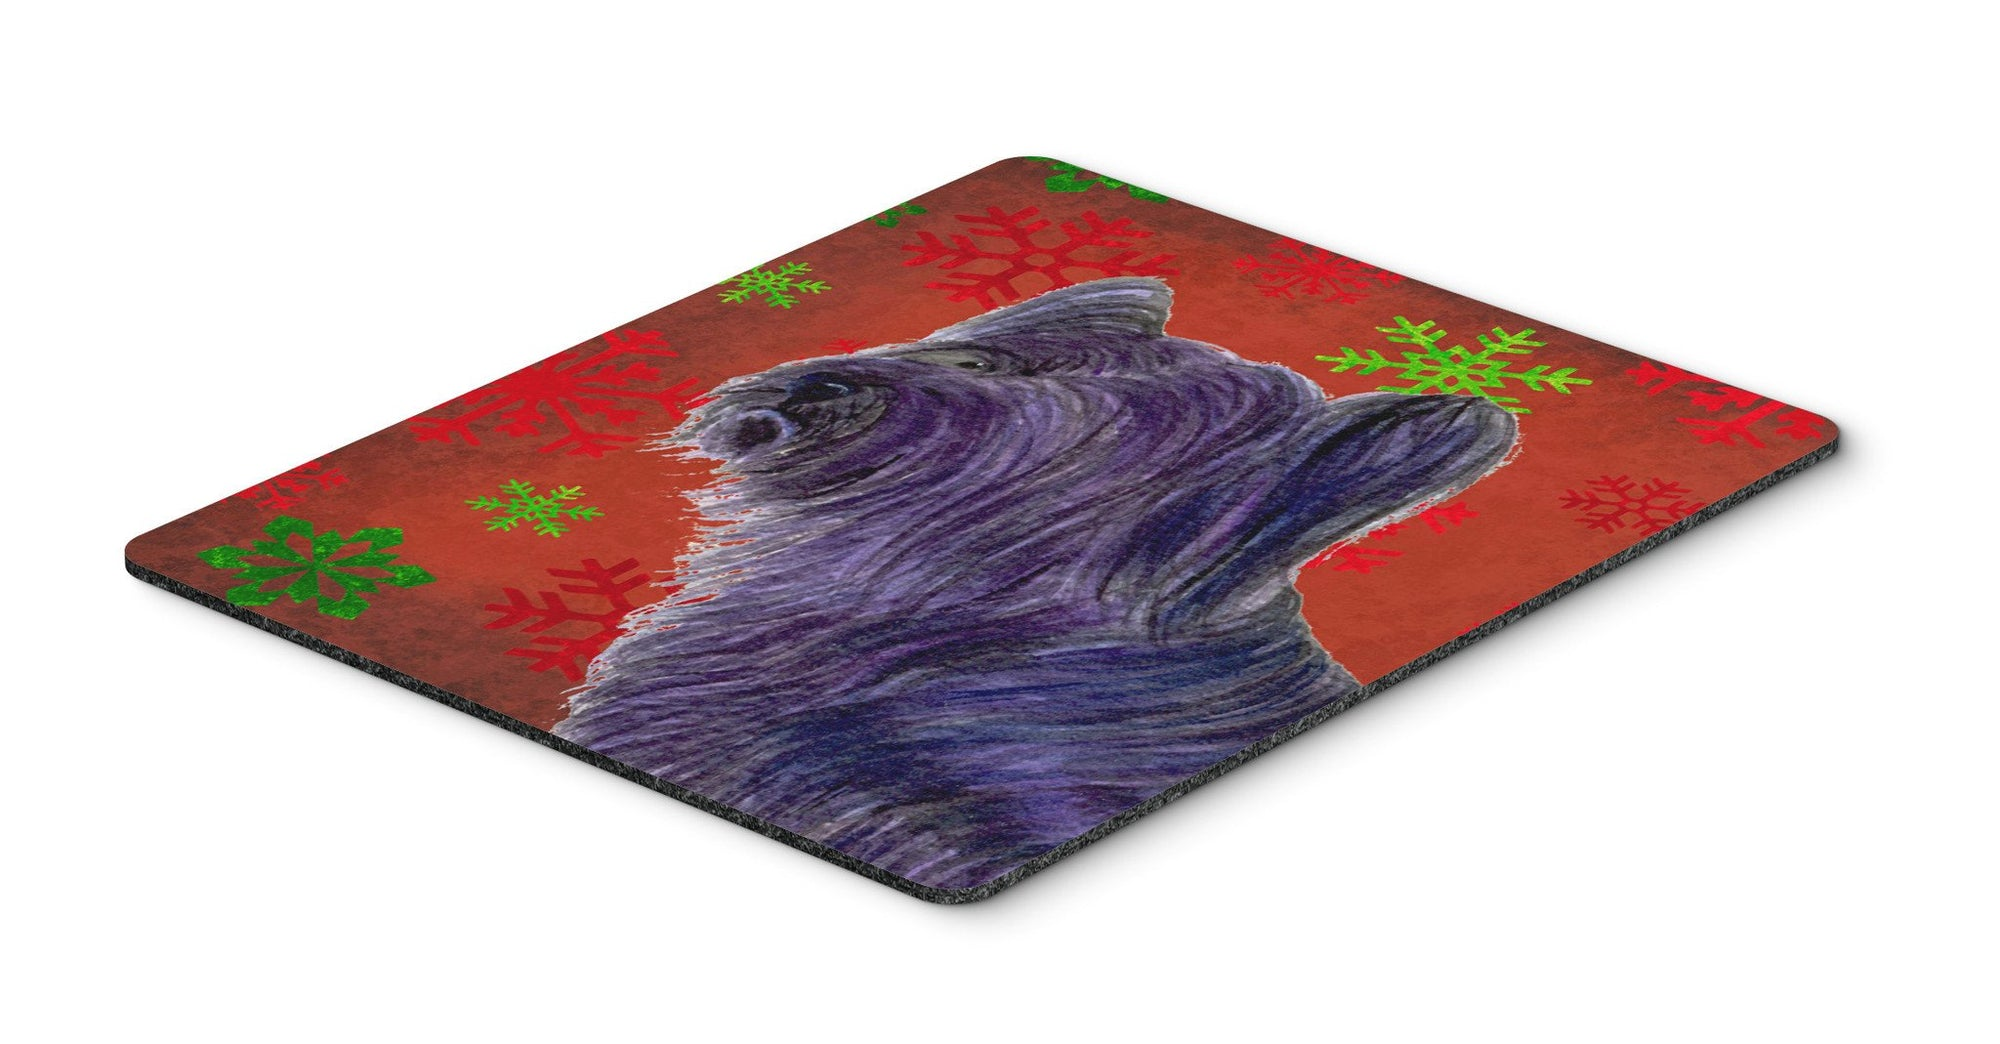 Skye Terrier Red and Green Snowflakes Christmas Mouse Pad, Hot Pad or Trivet by Caroline's Treasures